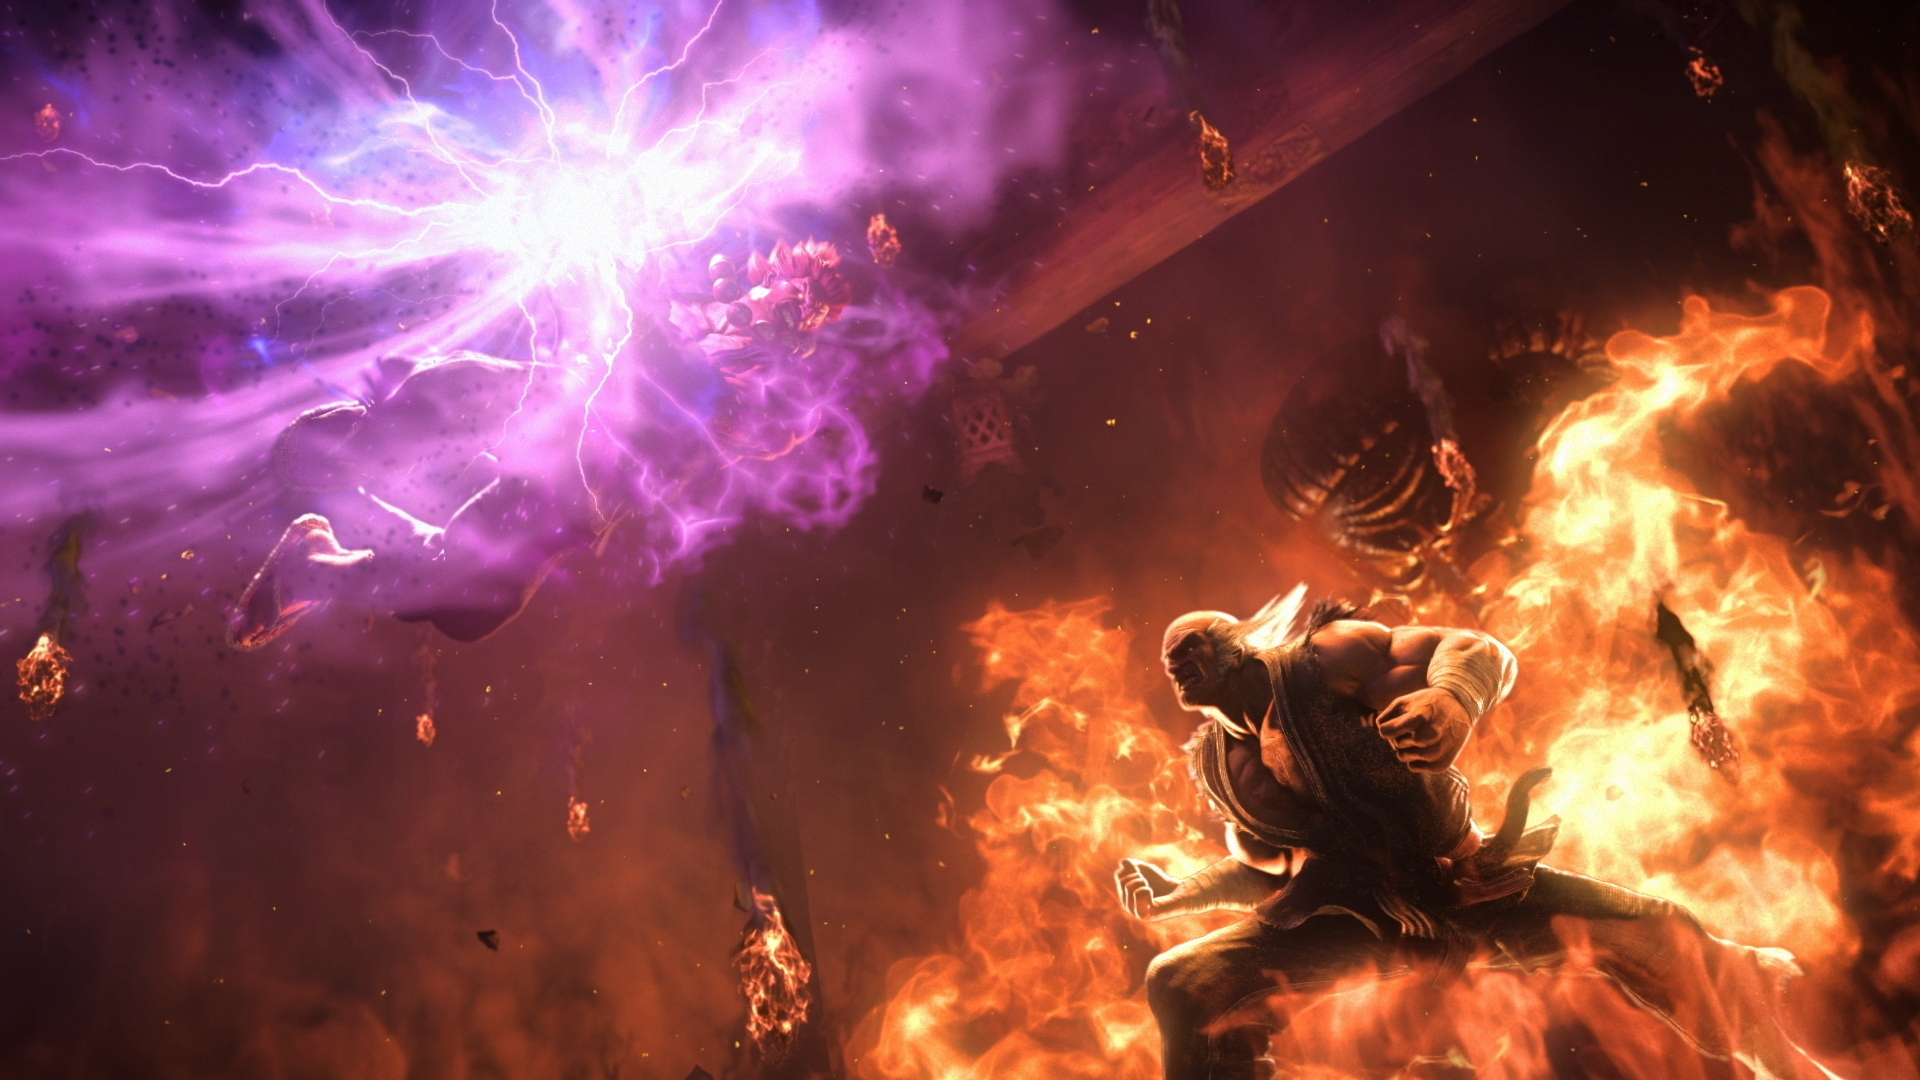 Tekken 7 Review Stellar Pc Port For Both 4k Rigs And Intel Hd Graphics Ars Technica